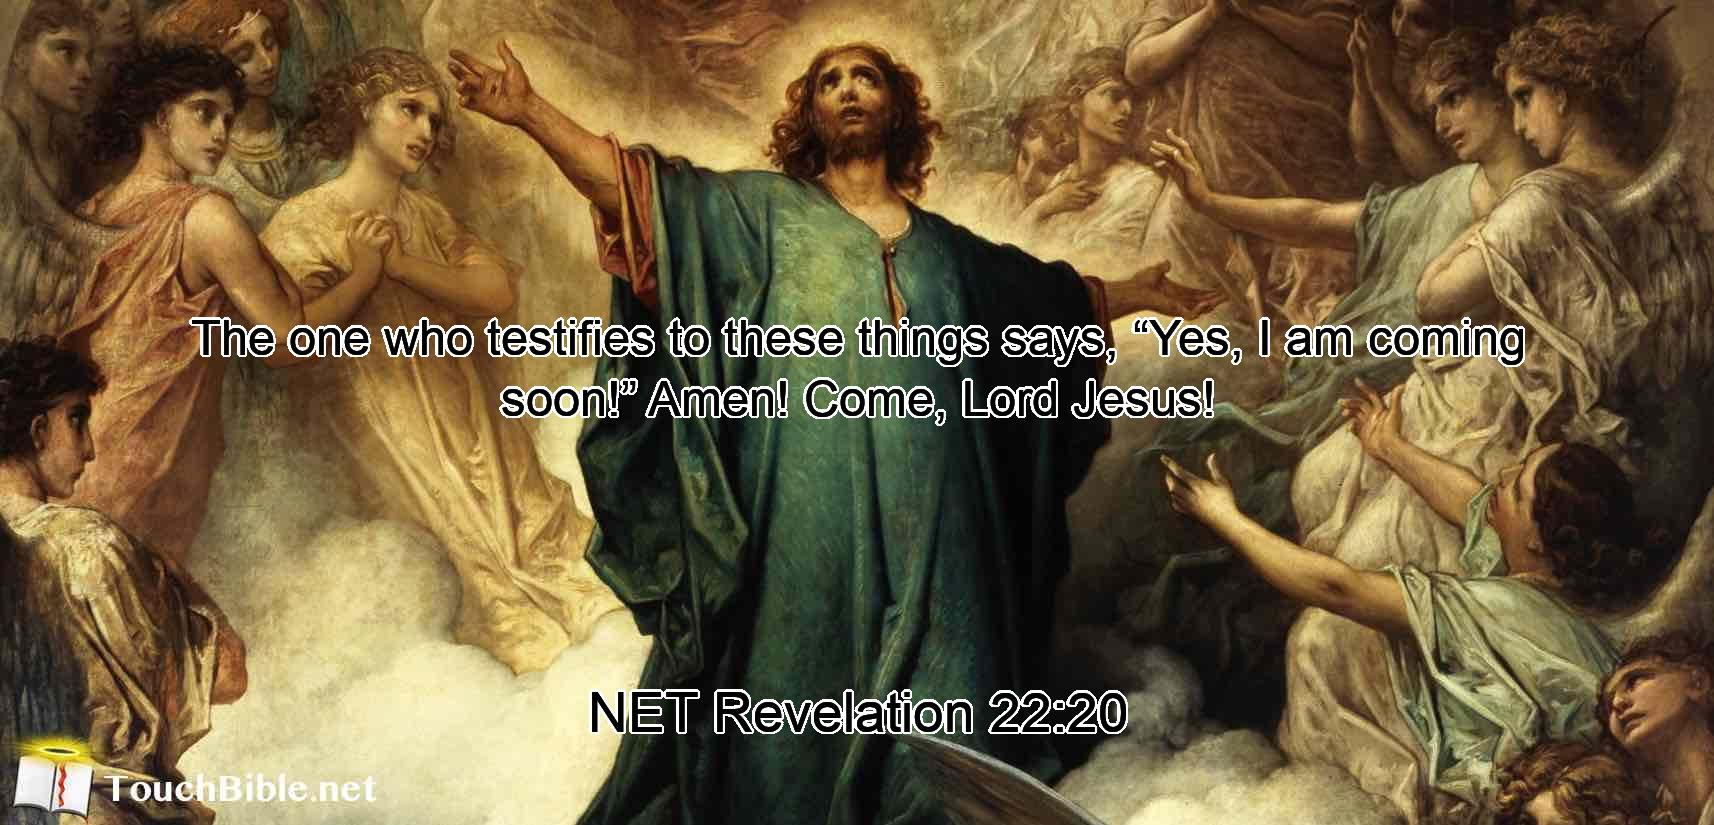 """The one who testifies to these things says, """"Yes, I am coming soon!"""" Amen! Come, Lord Jesus!"""